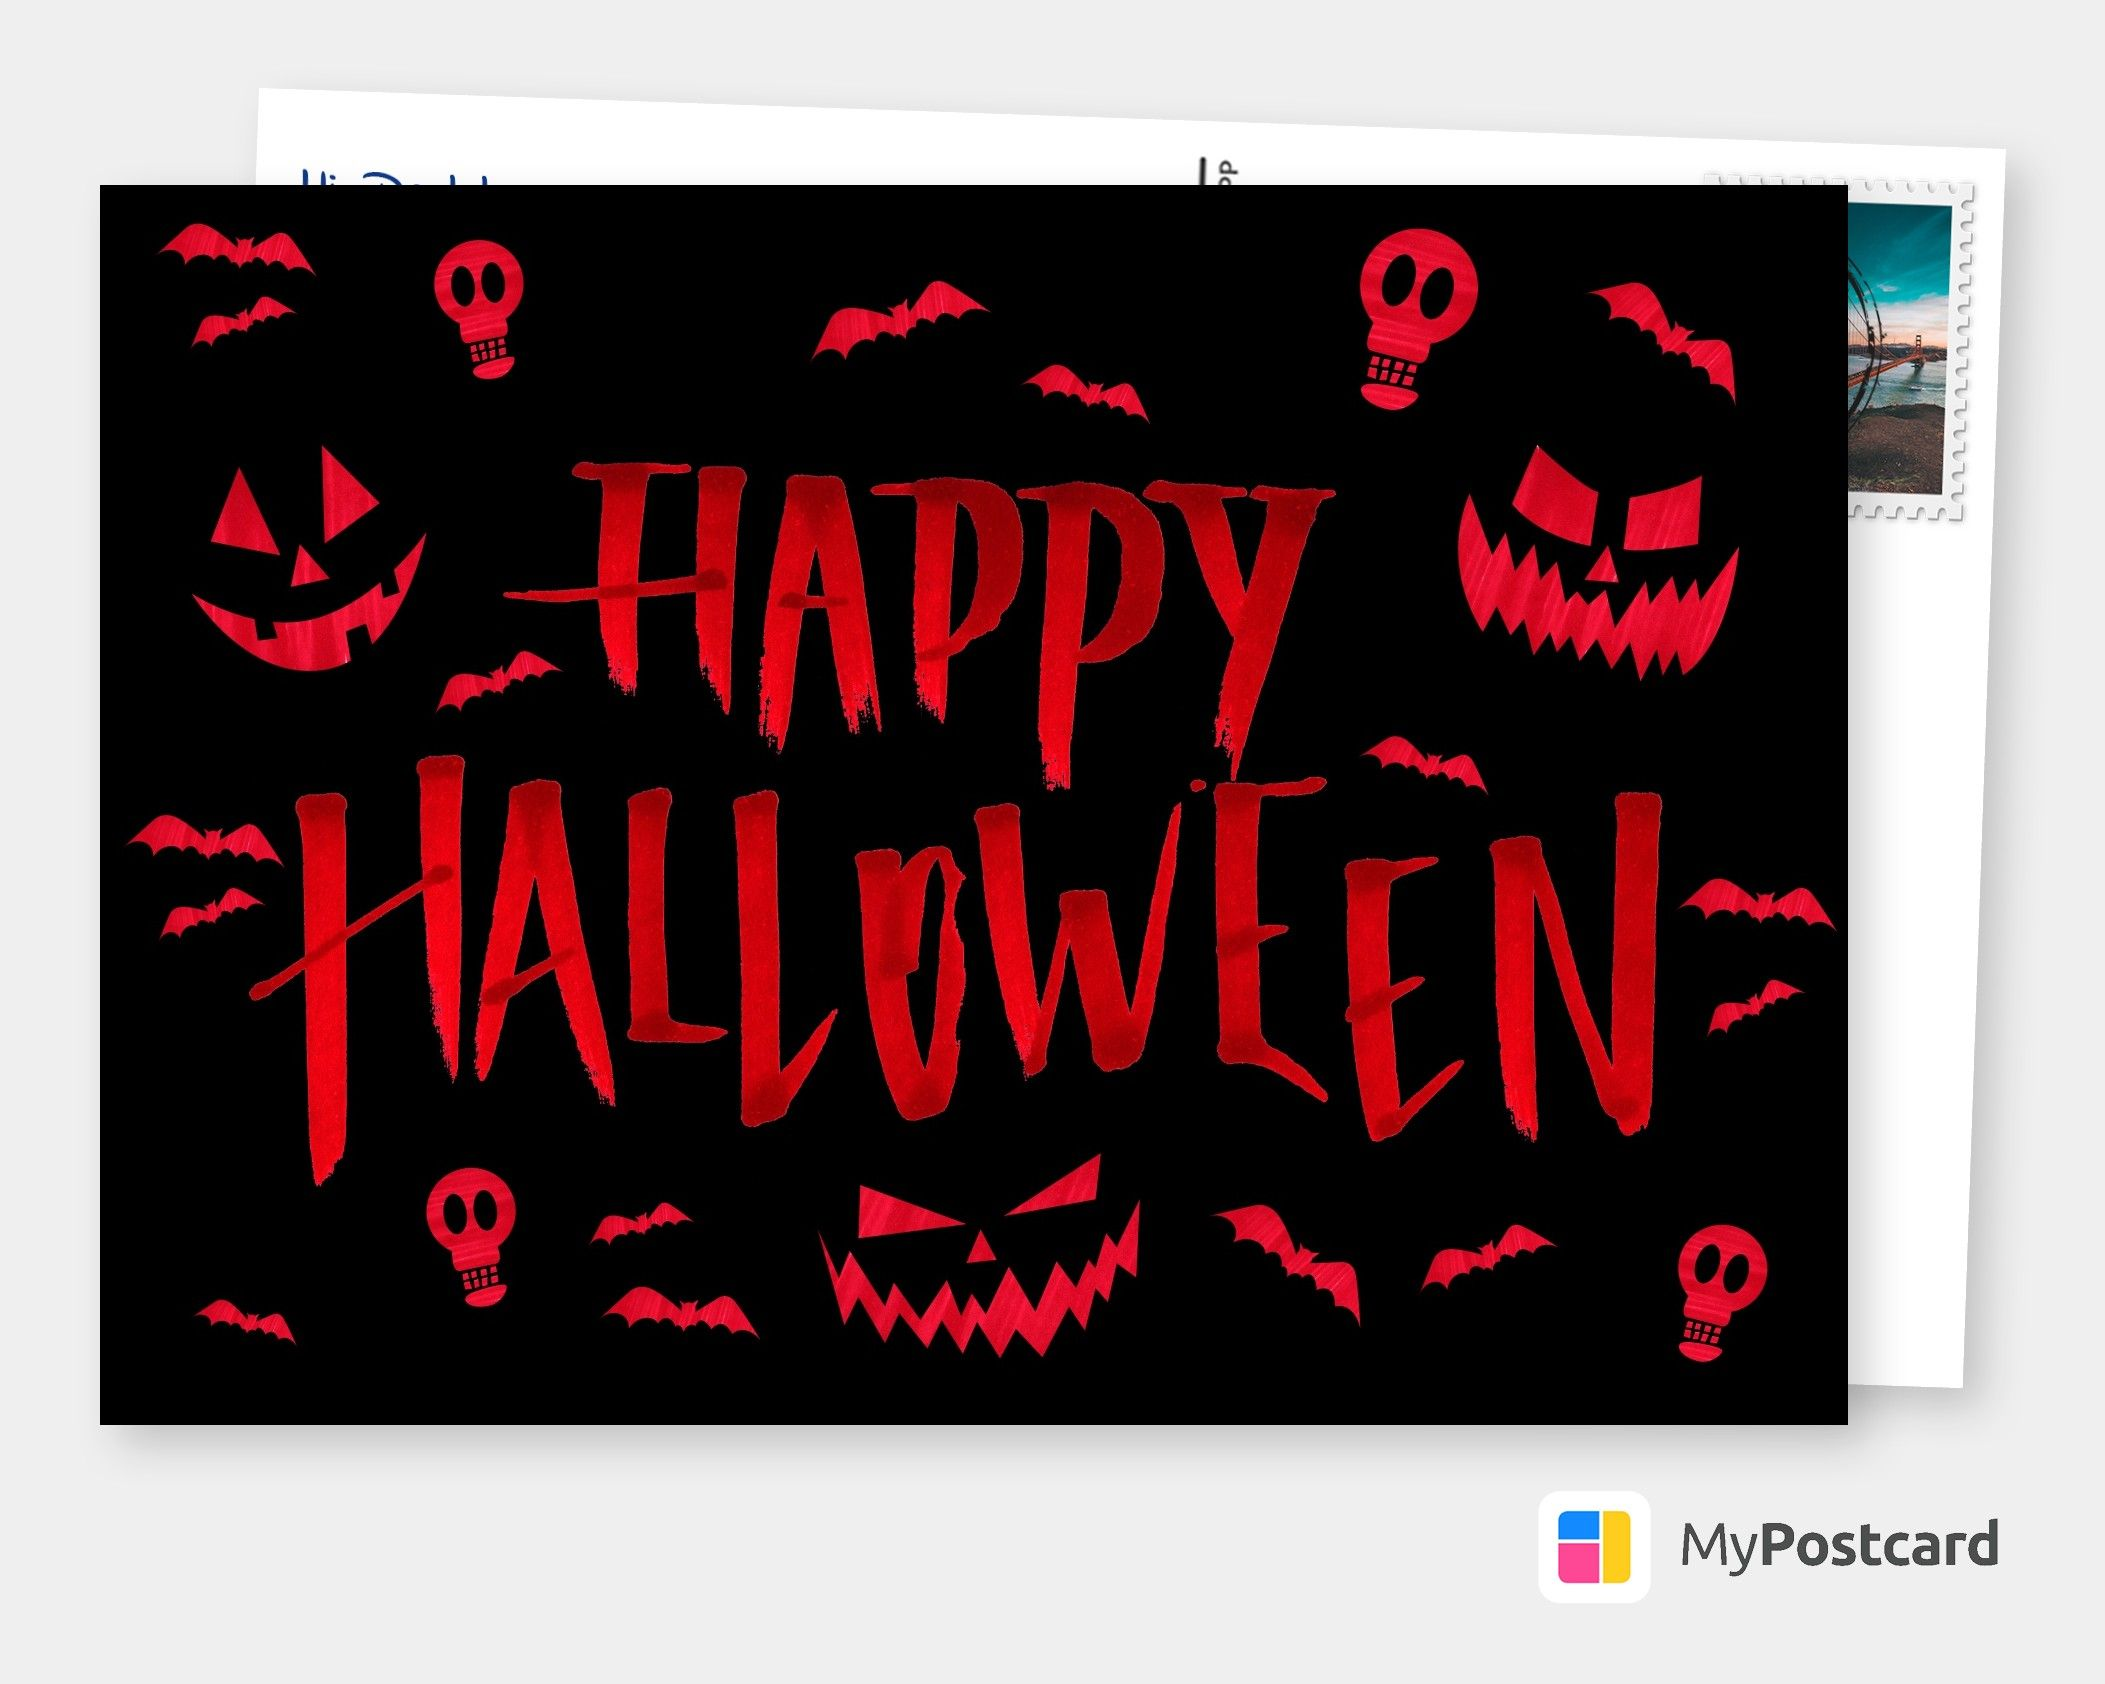 Happy Halloween Lettering Halloween Cards Quotes Send Real Postcards Online In 2020 Halloween Cards Diy Halloween Cards Halloween Greetings